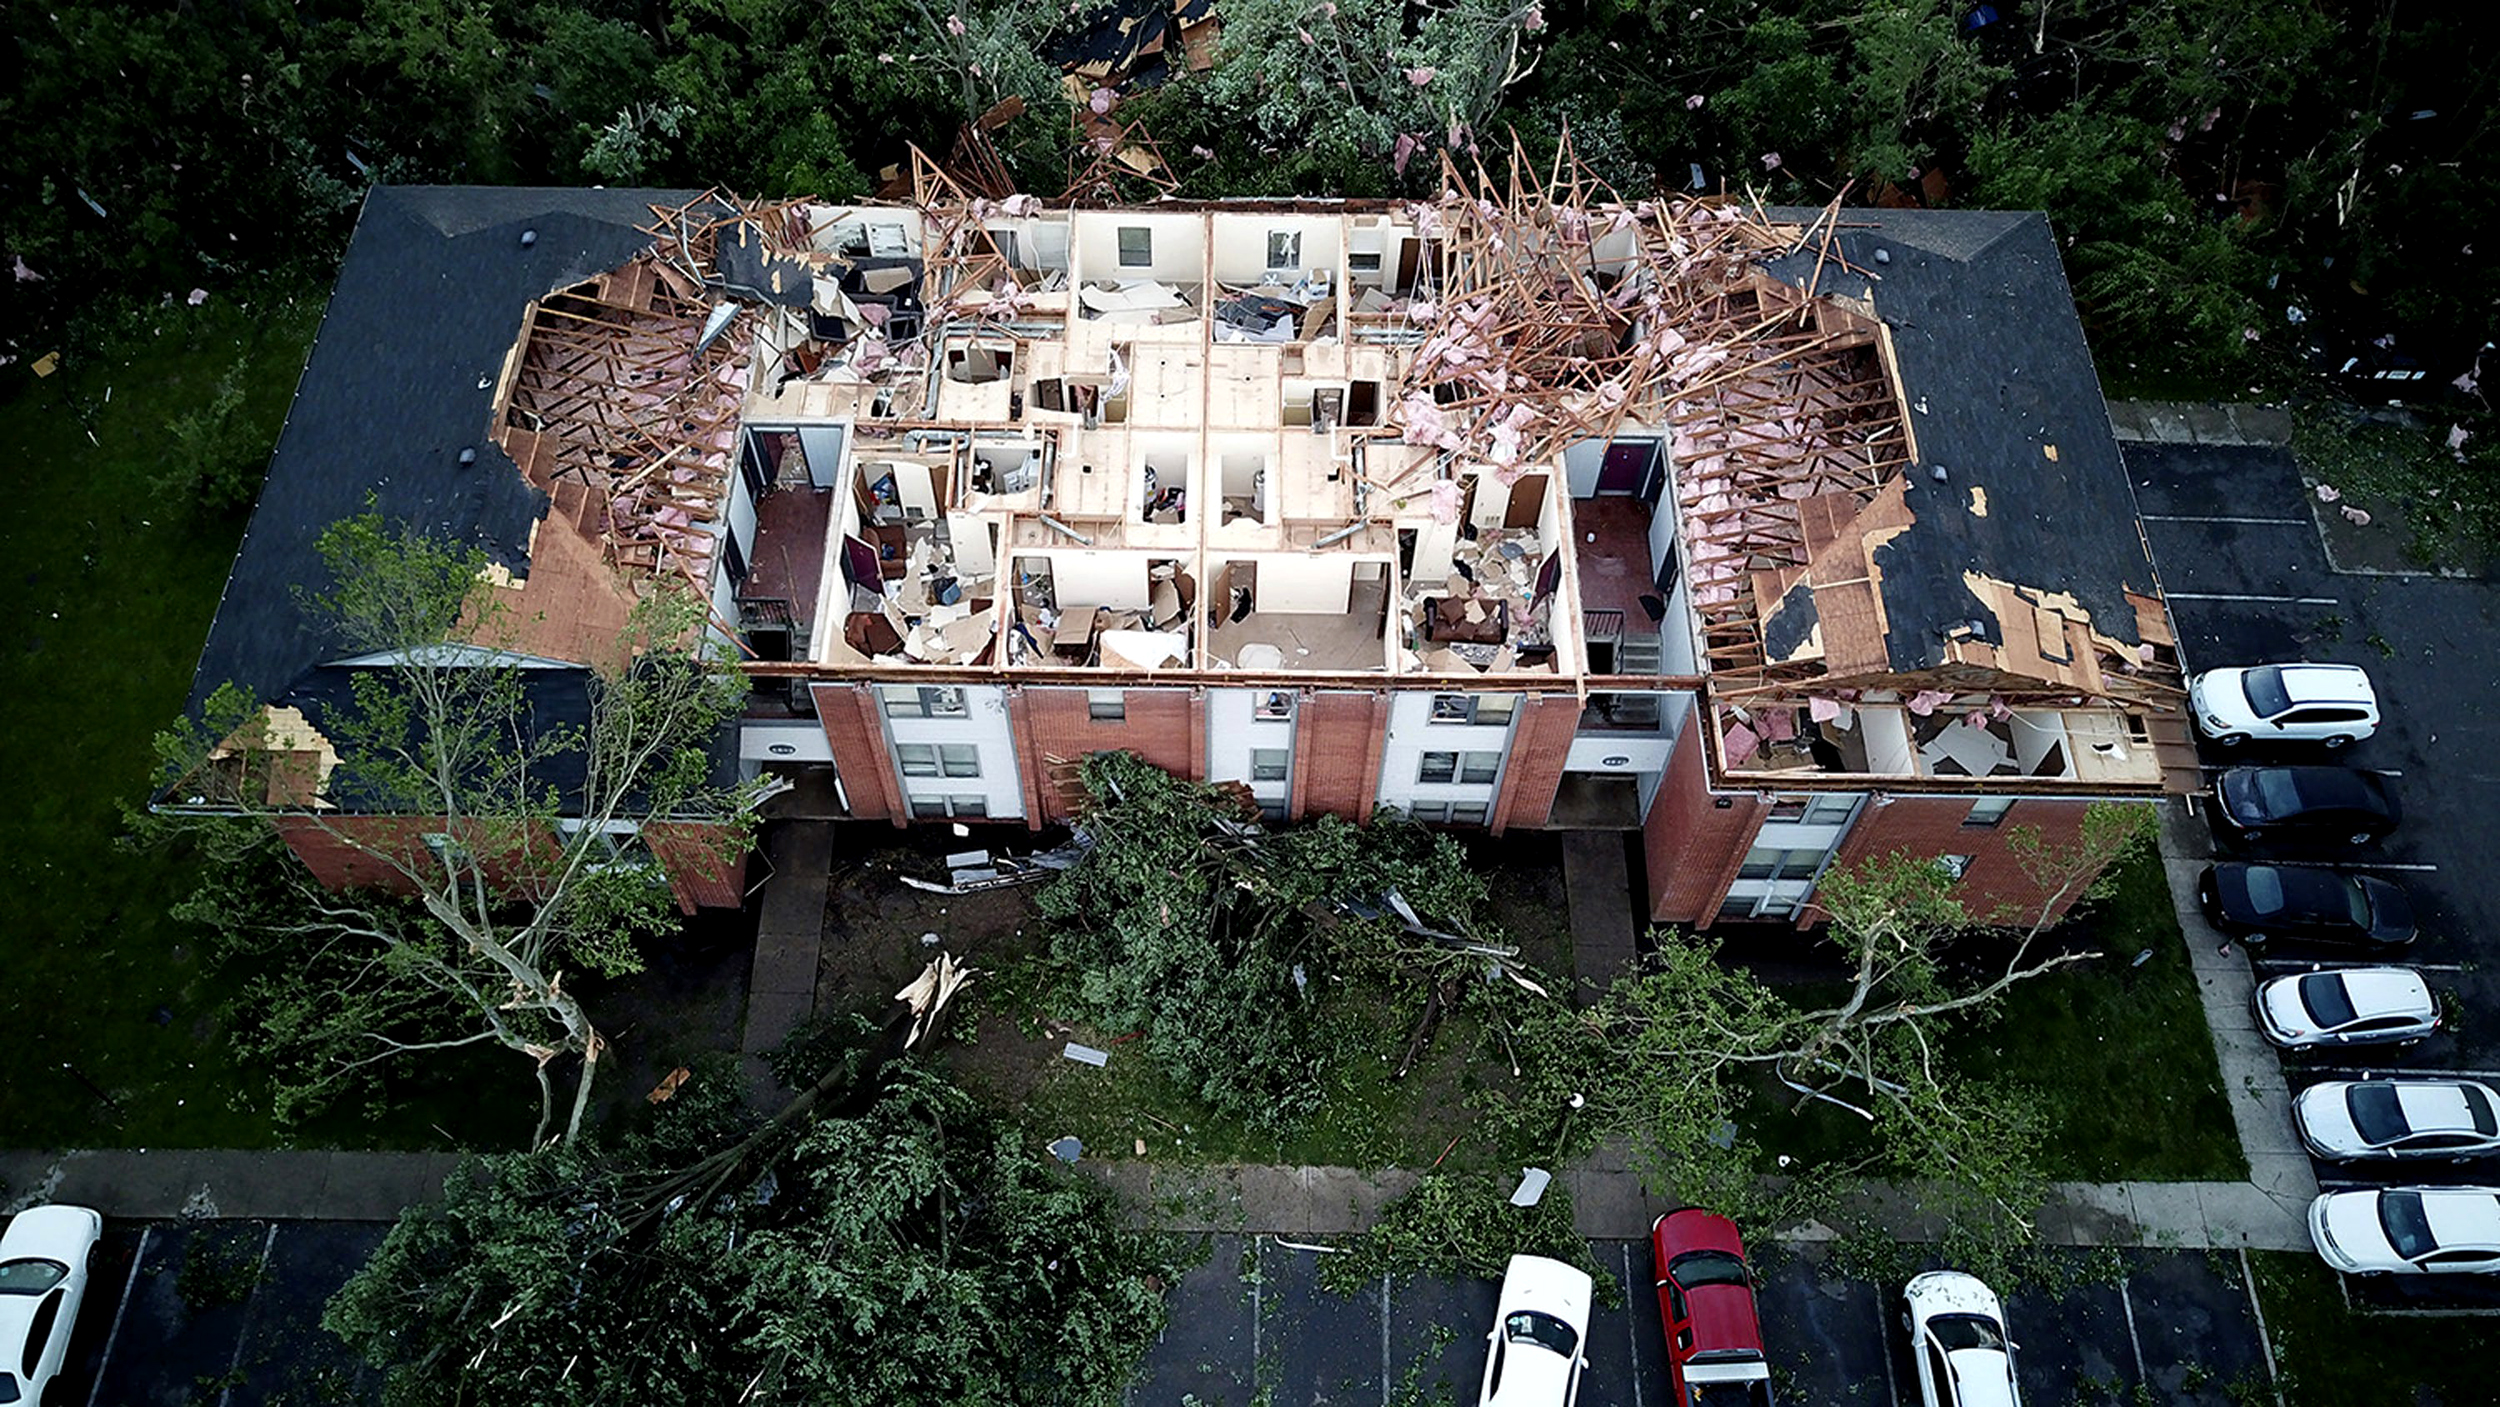 At least 1 dead, 12 injured from storms, tornadoes in